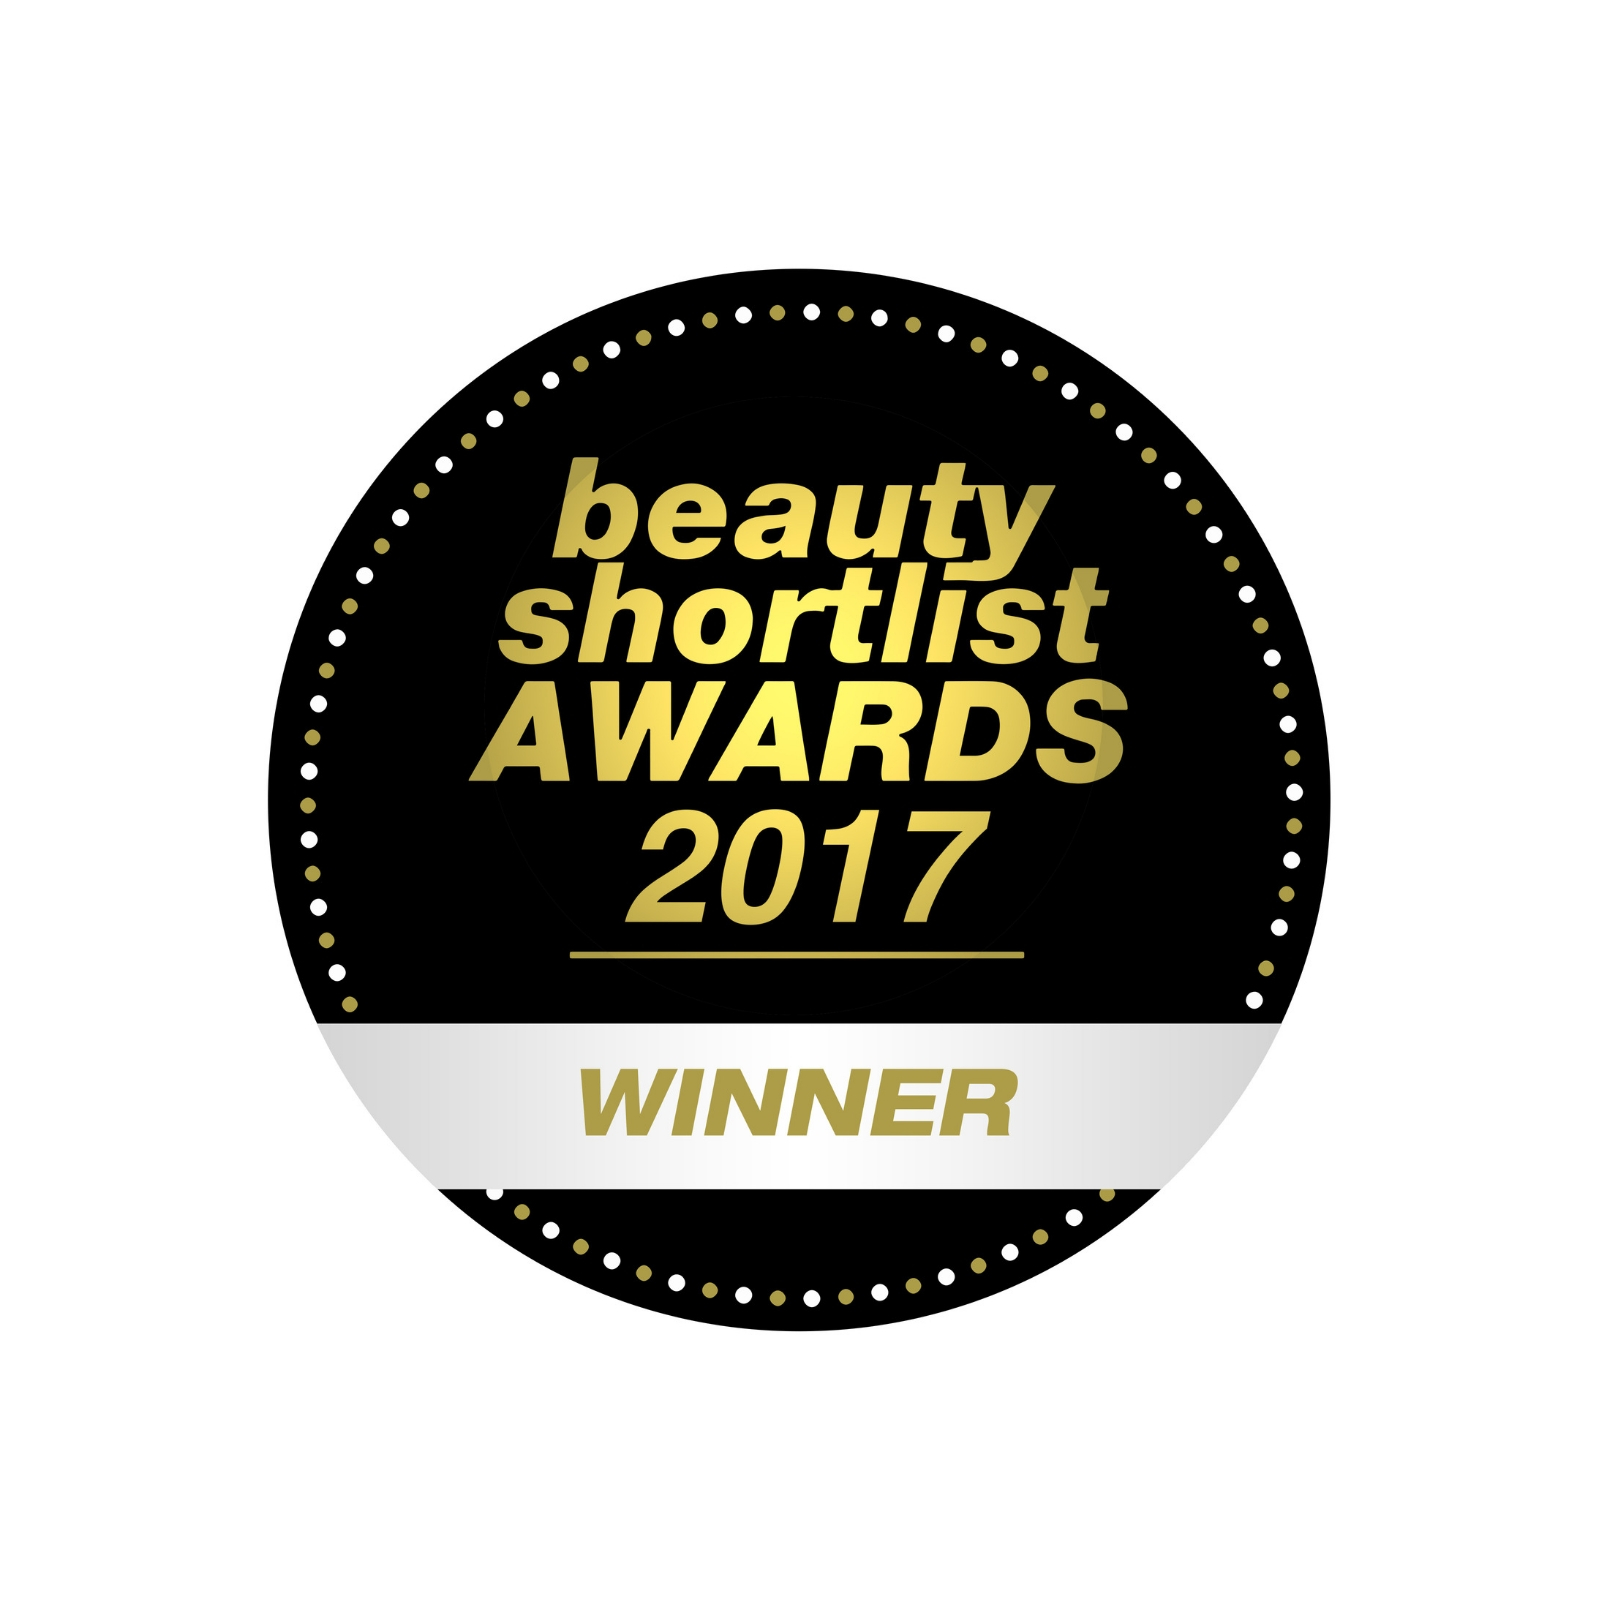 Winner of Best Hair Product Beauty Shortlist Awards: Styling Mist for Natural Hold and Volume, best for fine hair